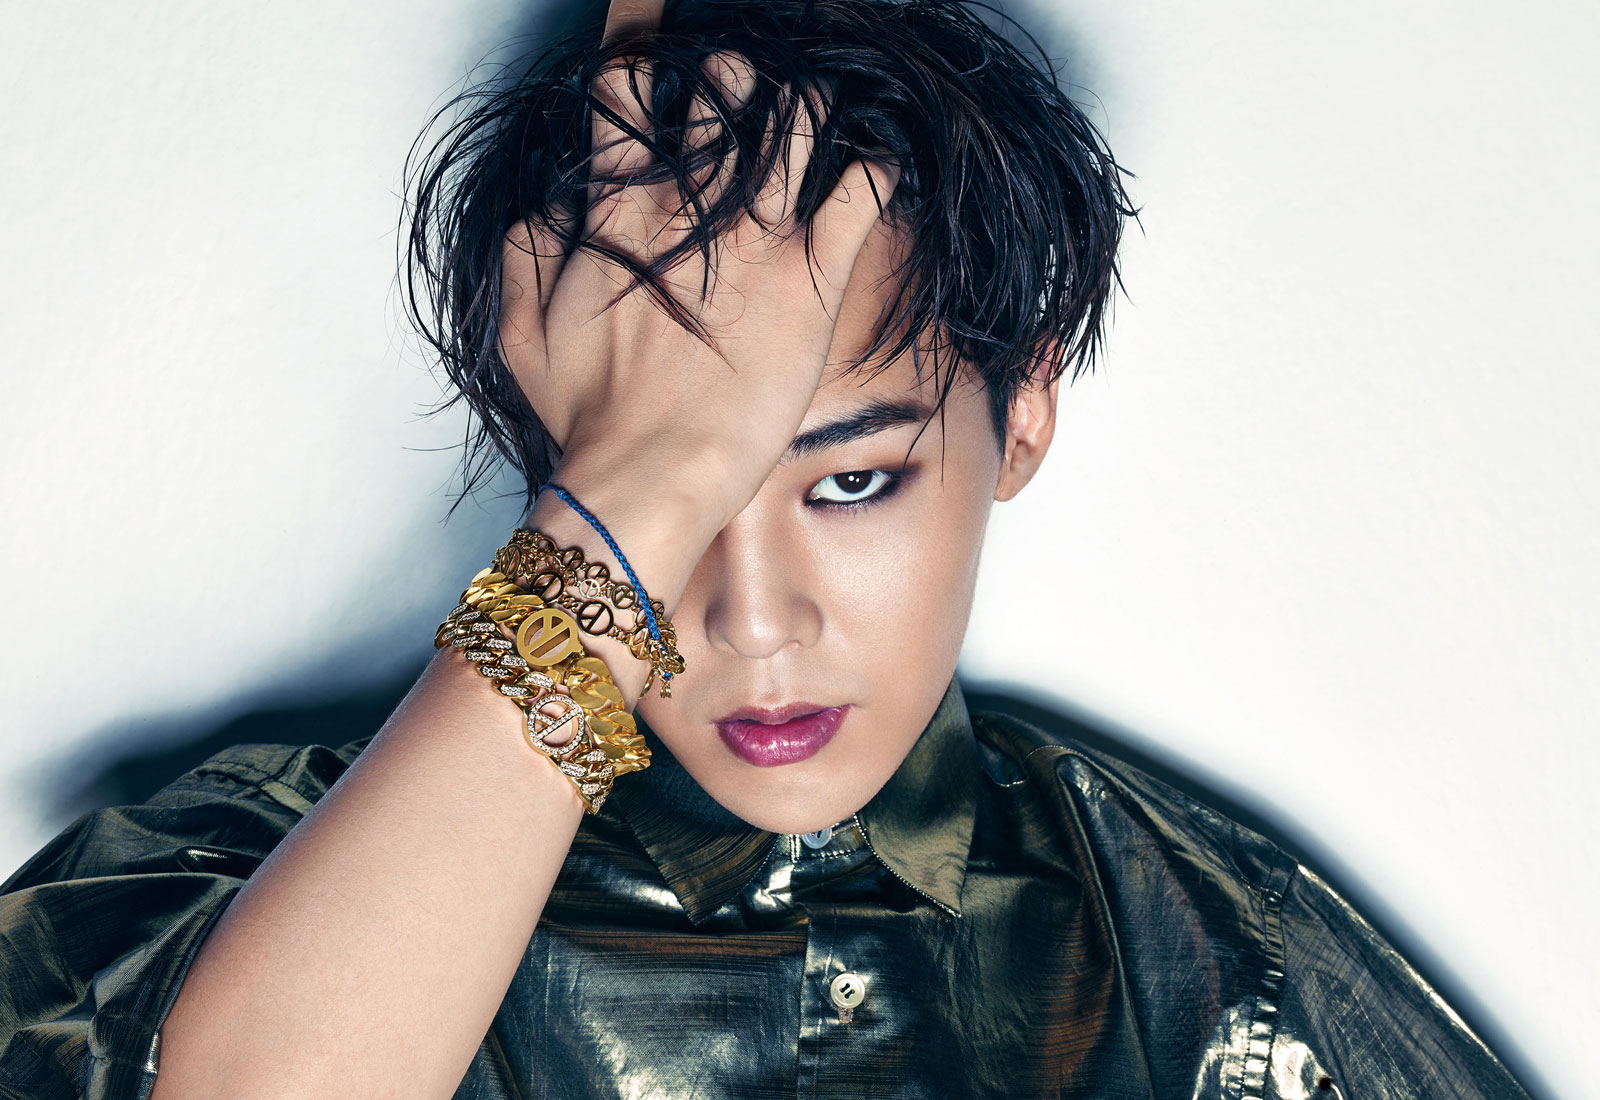 fashion icons 2016 g-dragon kpop star 1600 x 1100